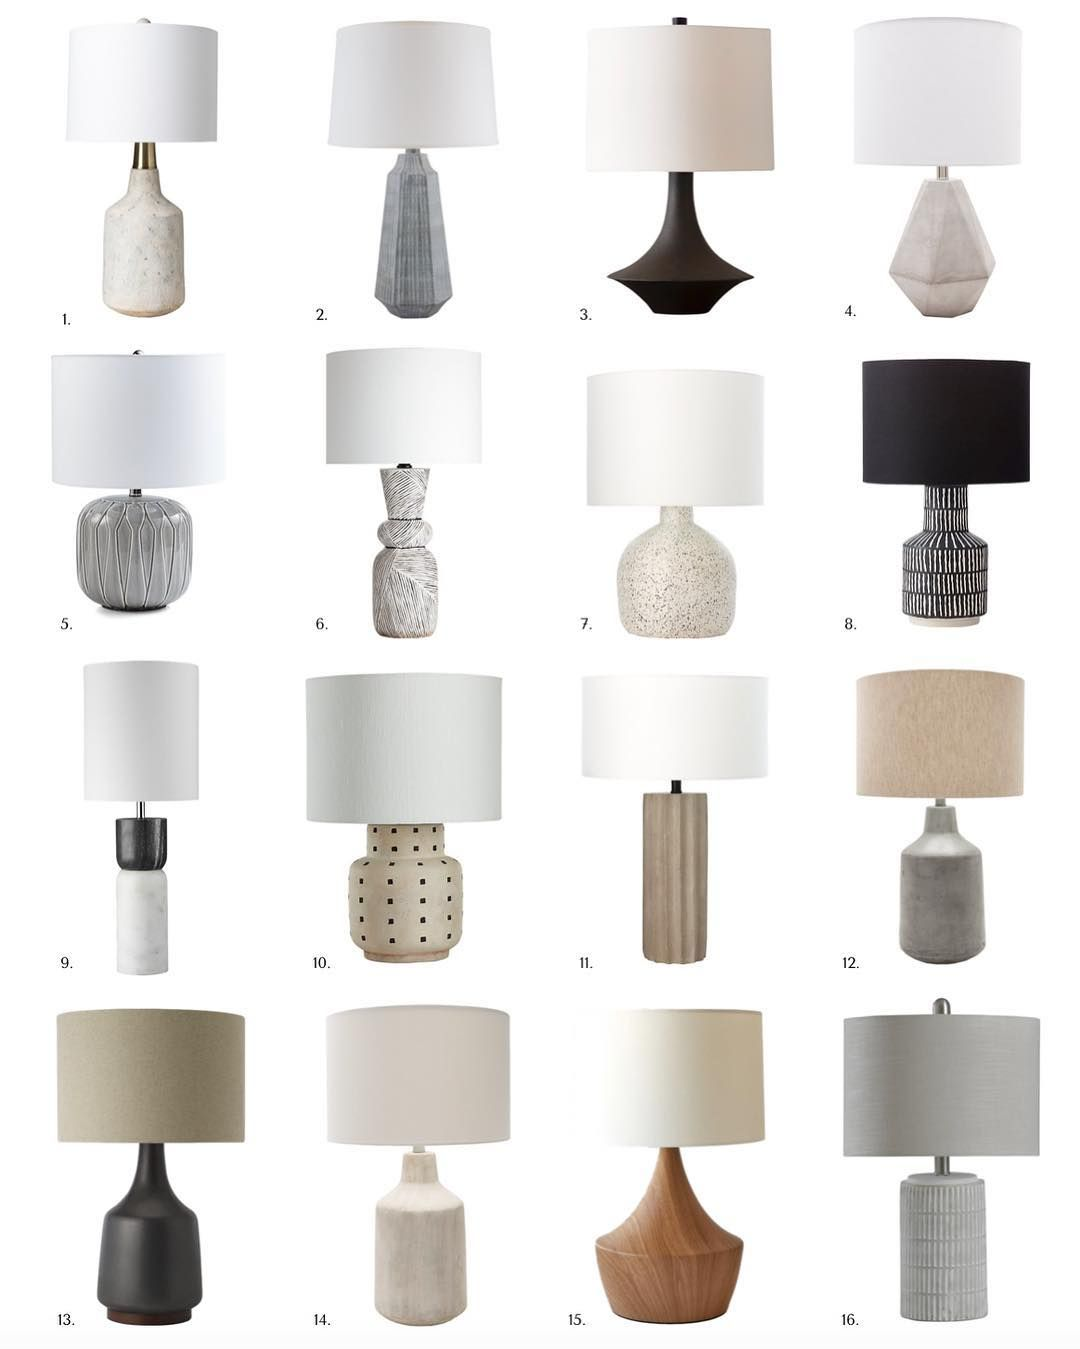 Wall Fixtures I Cono 0725 Design By Lievore Altherr Molina Rugen